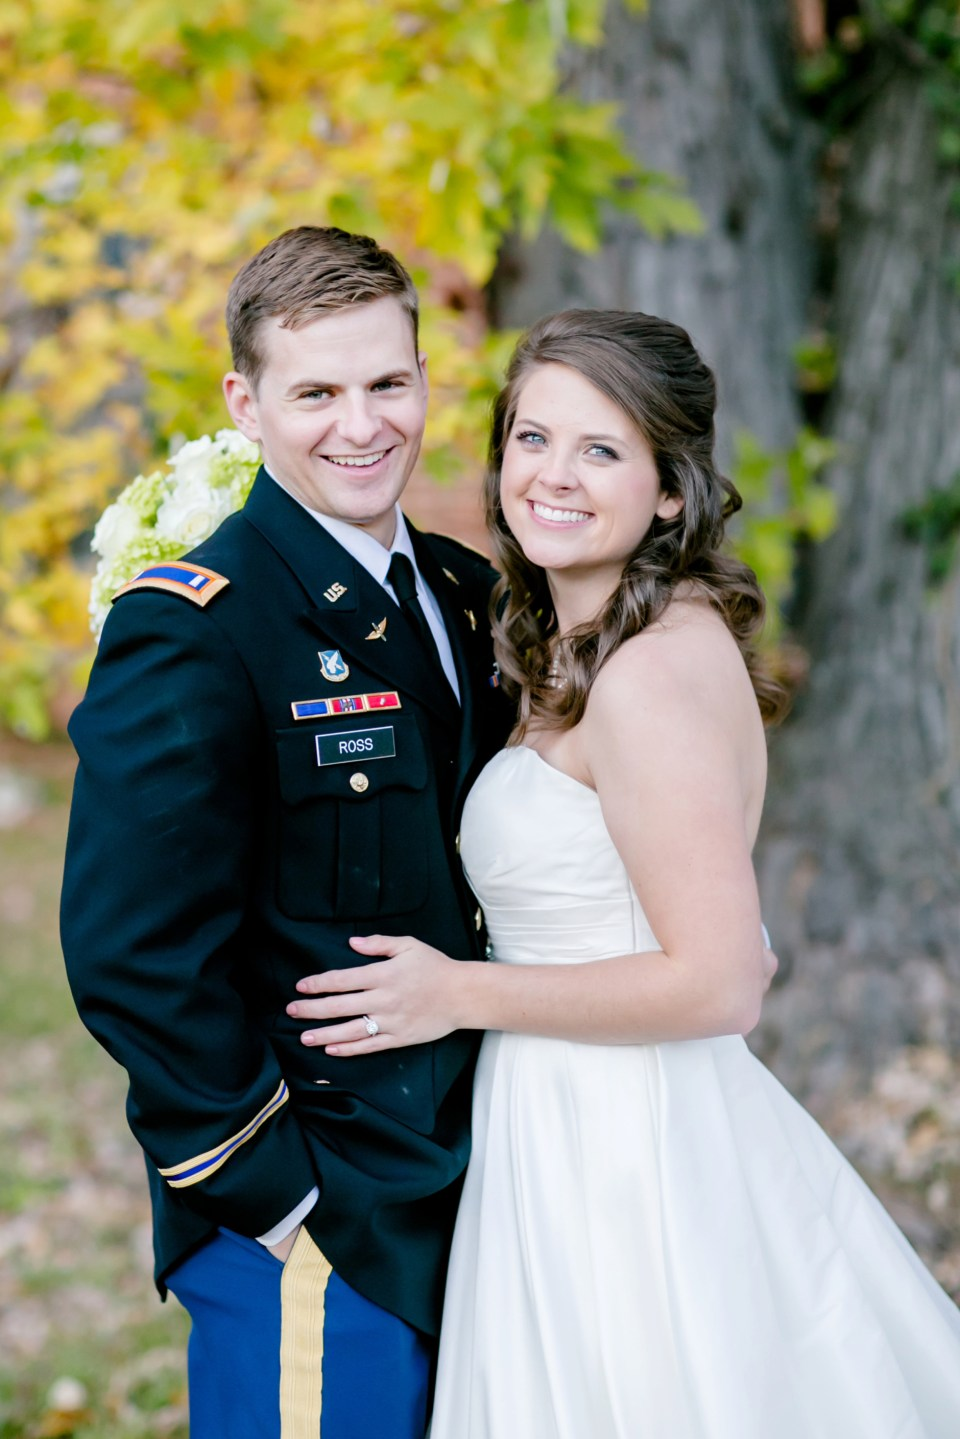 33-a-inn-at-the-olde-silk-mill-wedding-fall-ashlee-stephen-carley-rehberg-photography-1131